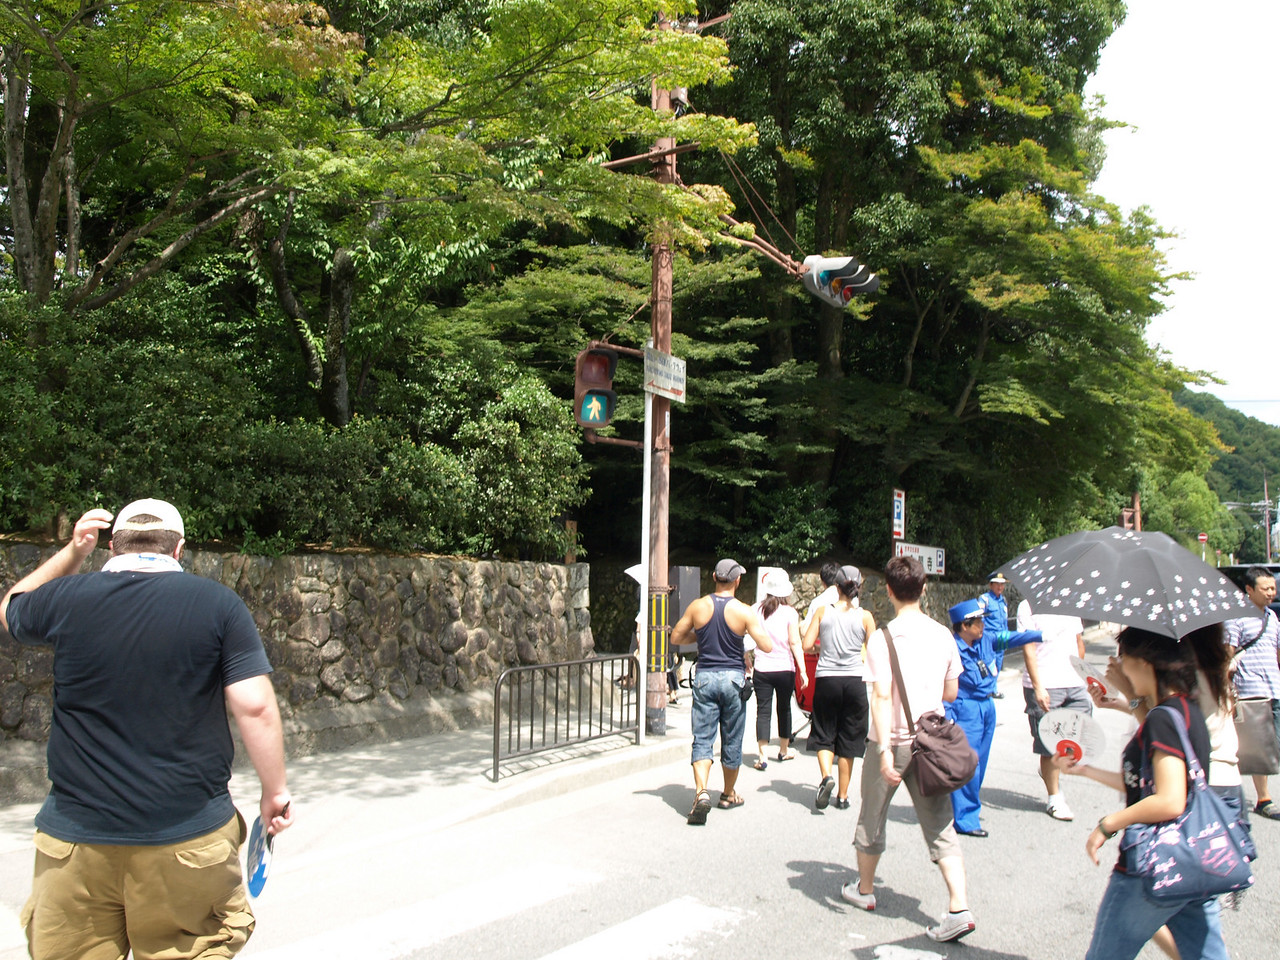 After taking a short break, we're off to our next stop, the Kinkaru-ji (Gold) Pavilion